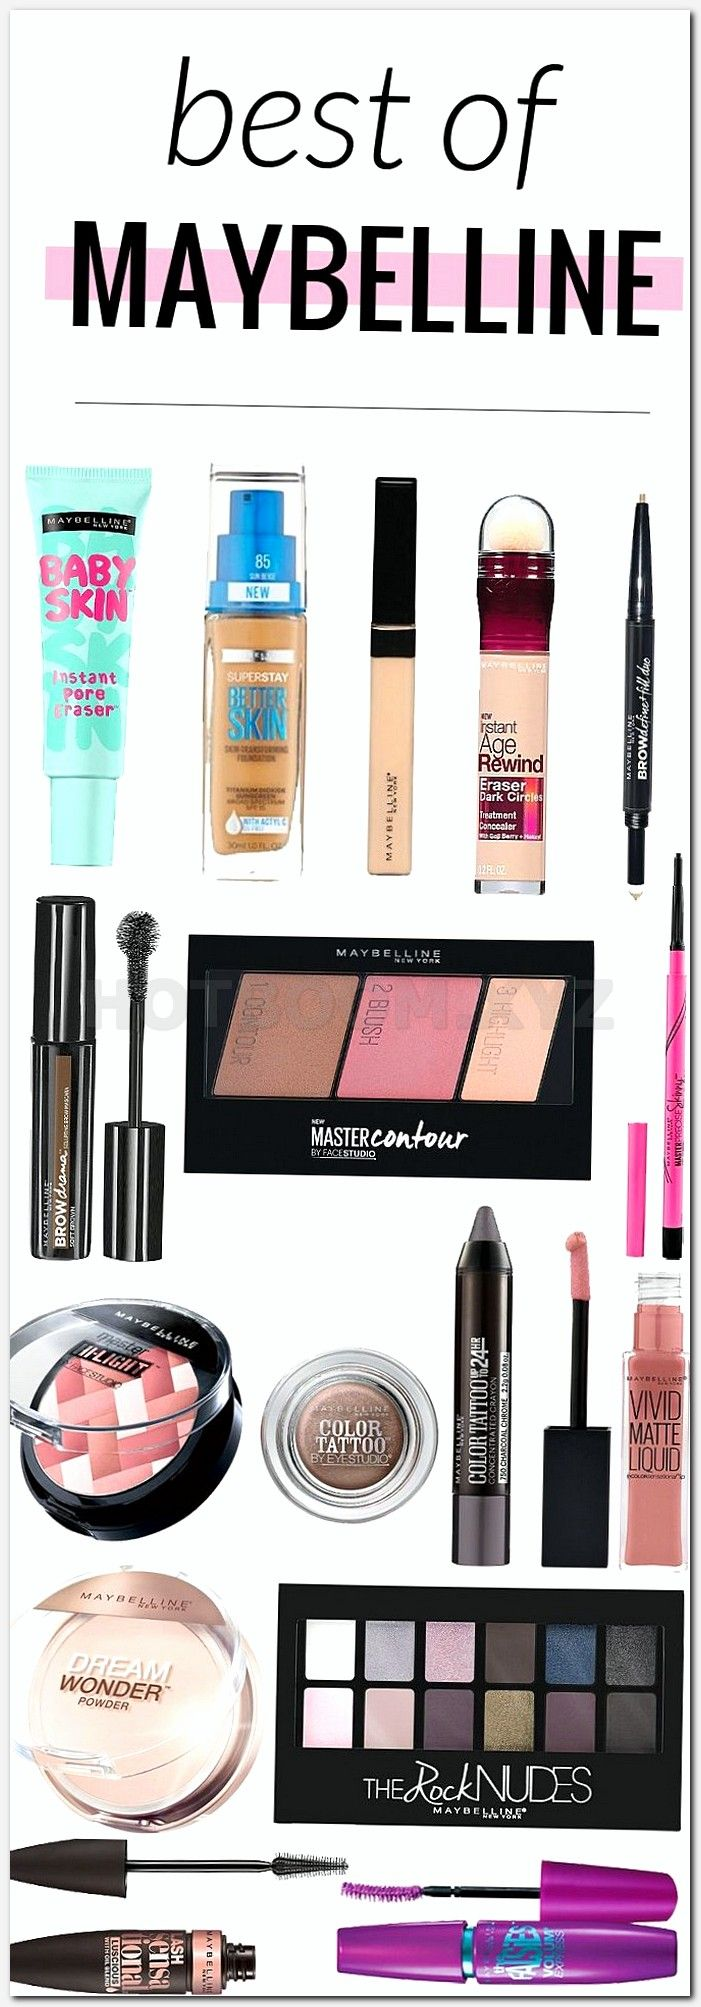 safe cosmetic database, how to do a smokey eye for beginners, the makeup of, make up space, wedding makeup for asian eyes, dusky skin makeup, nearest beauty supply store near me, beauty supply store open, cyrus makeup artist, casual makeup, lakme pro makeup, how to achieve smoky eye look, how to a smokey eye, makeup studio games, makeup for asian eyes with crease, harmful makeup brands